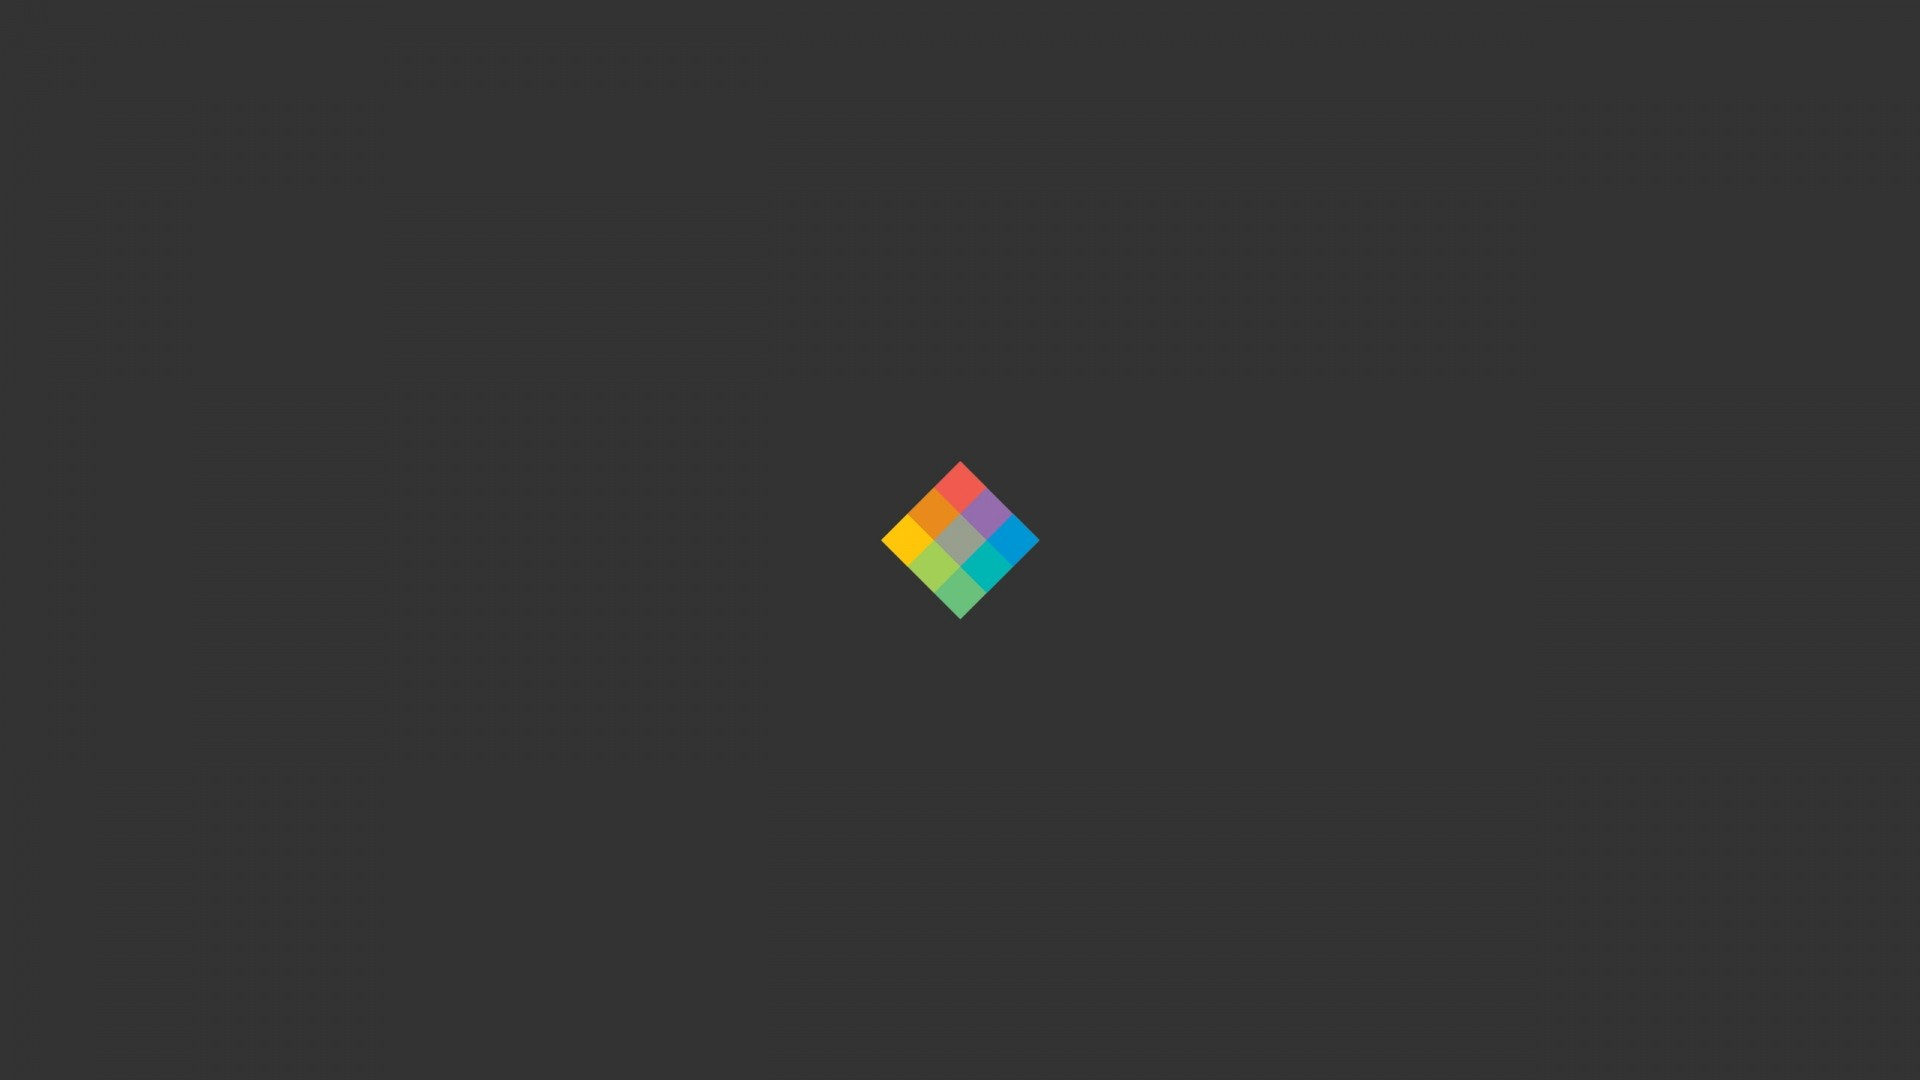 1920x1080 Wallpaper Minimalist Cube Bright Background Full HD 1080p